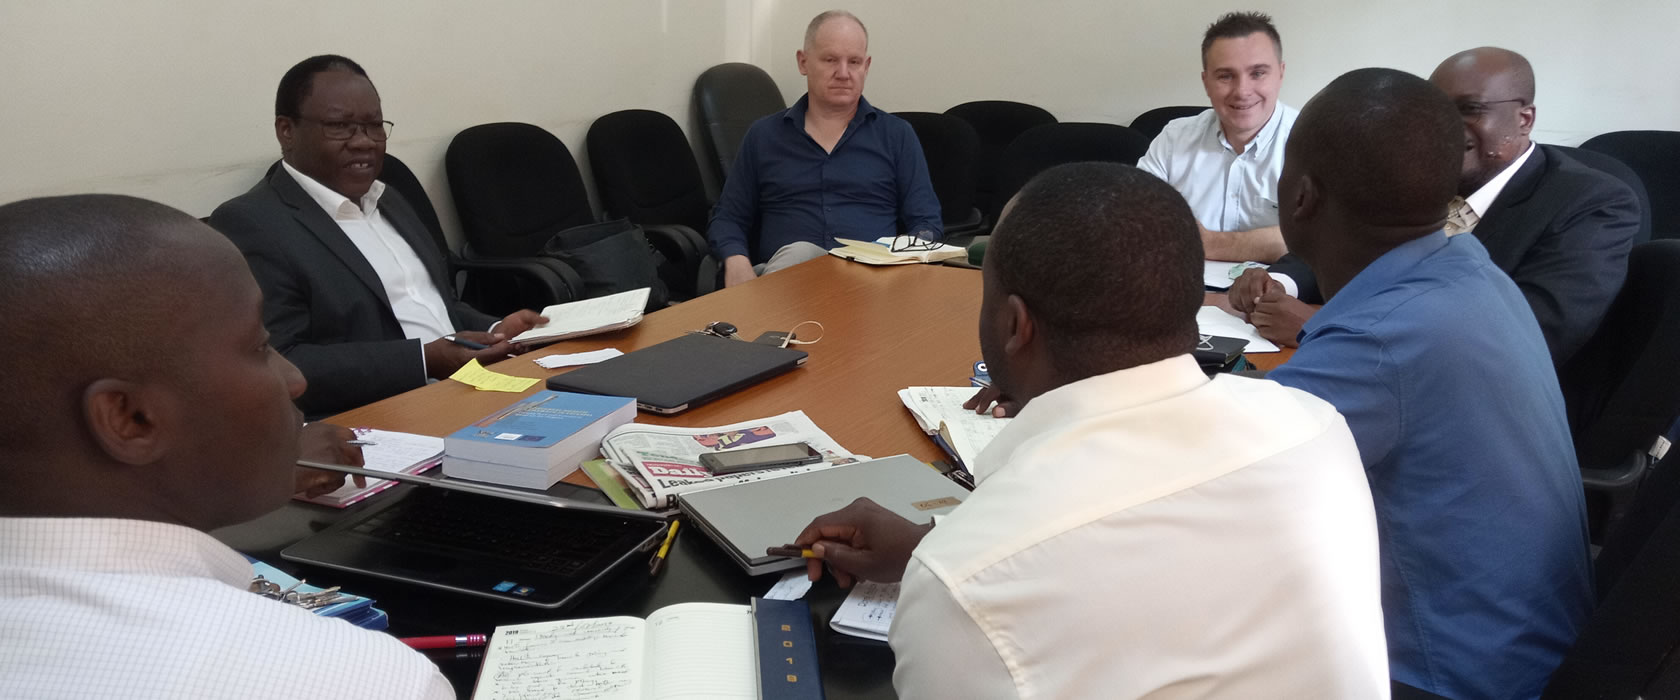 Team from University of York – Center for Health Economics (CHE) visits MakSPH